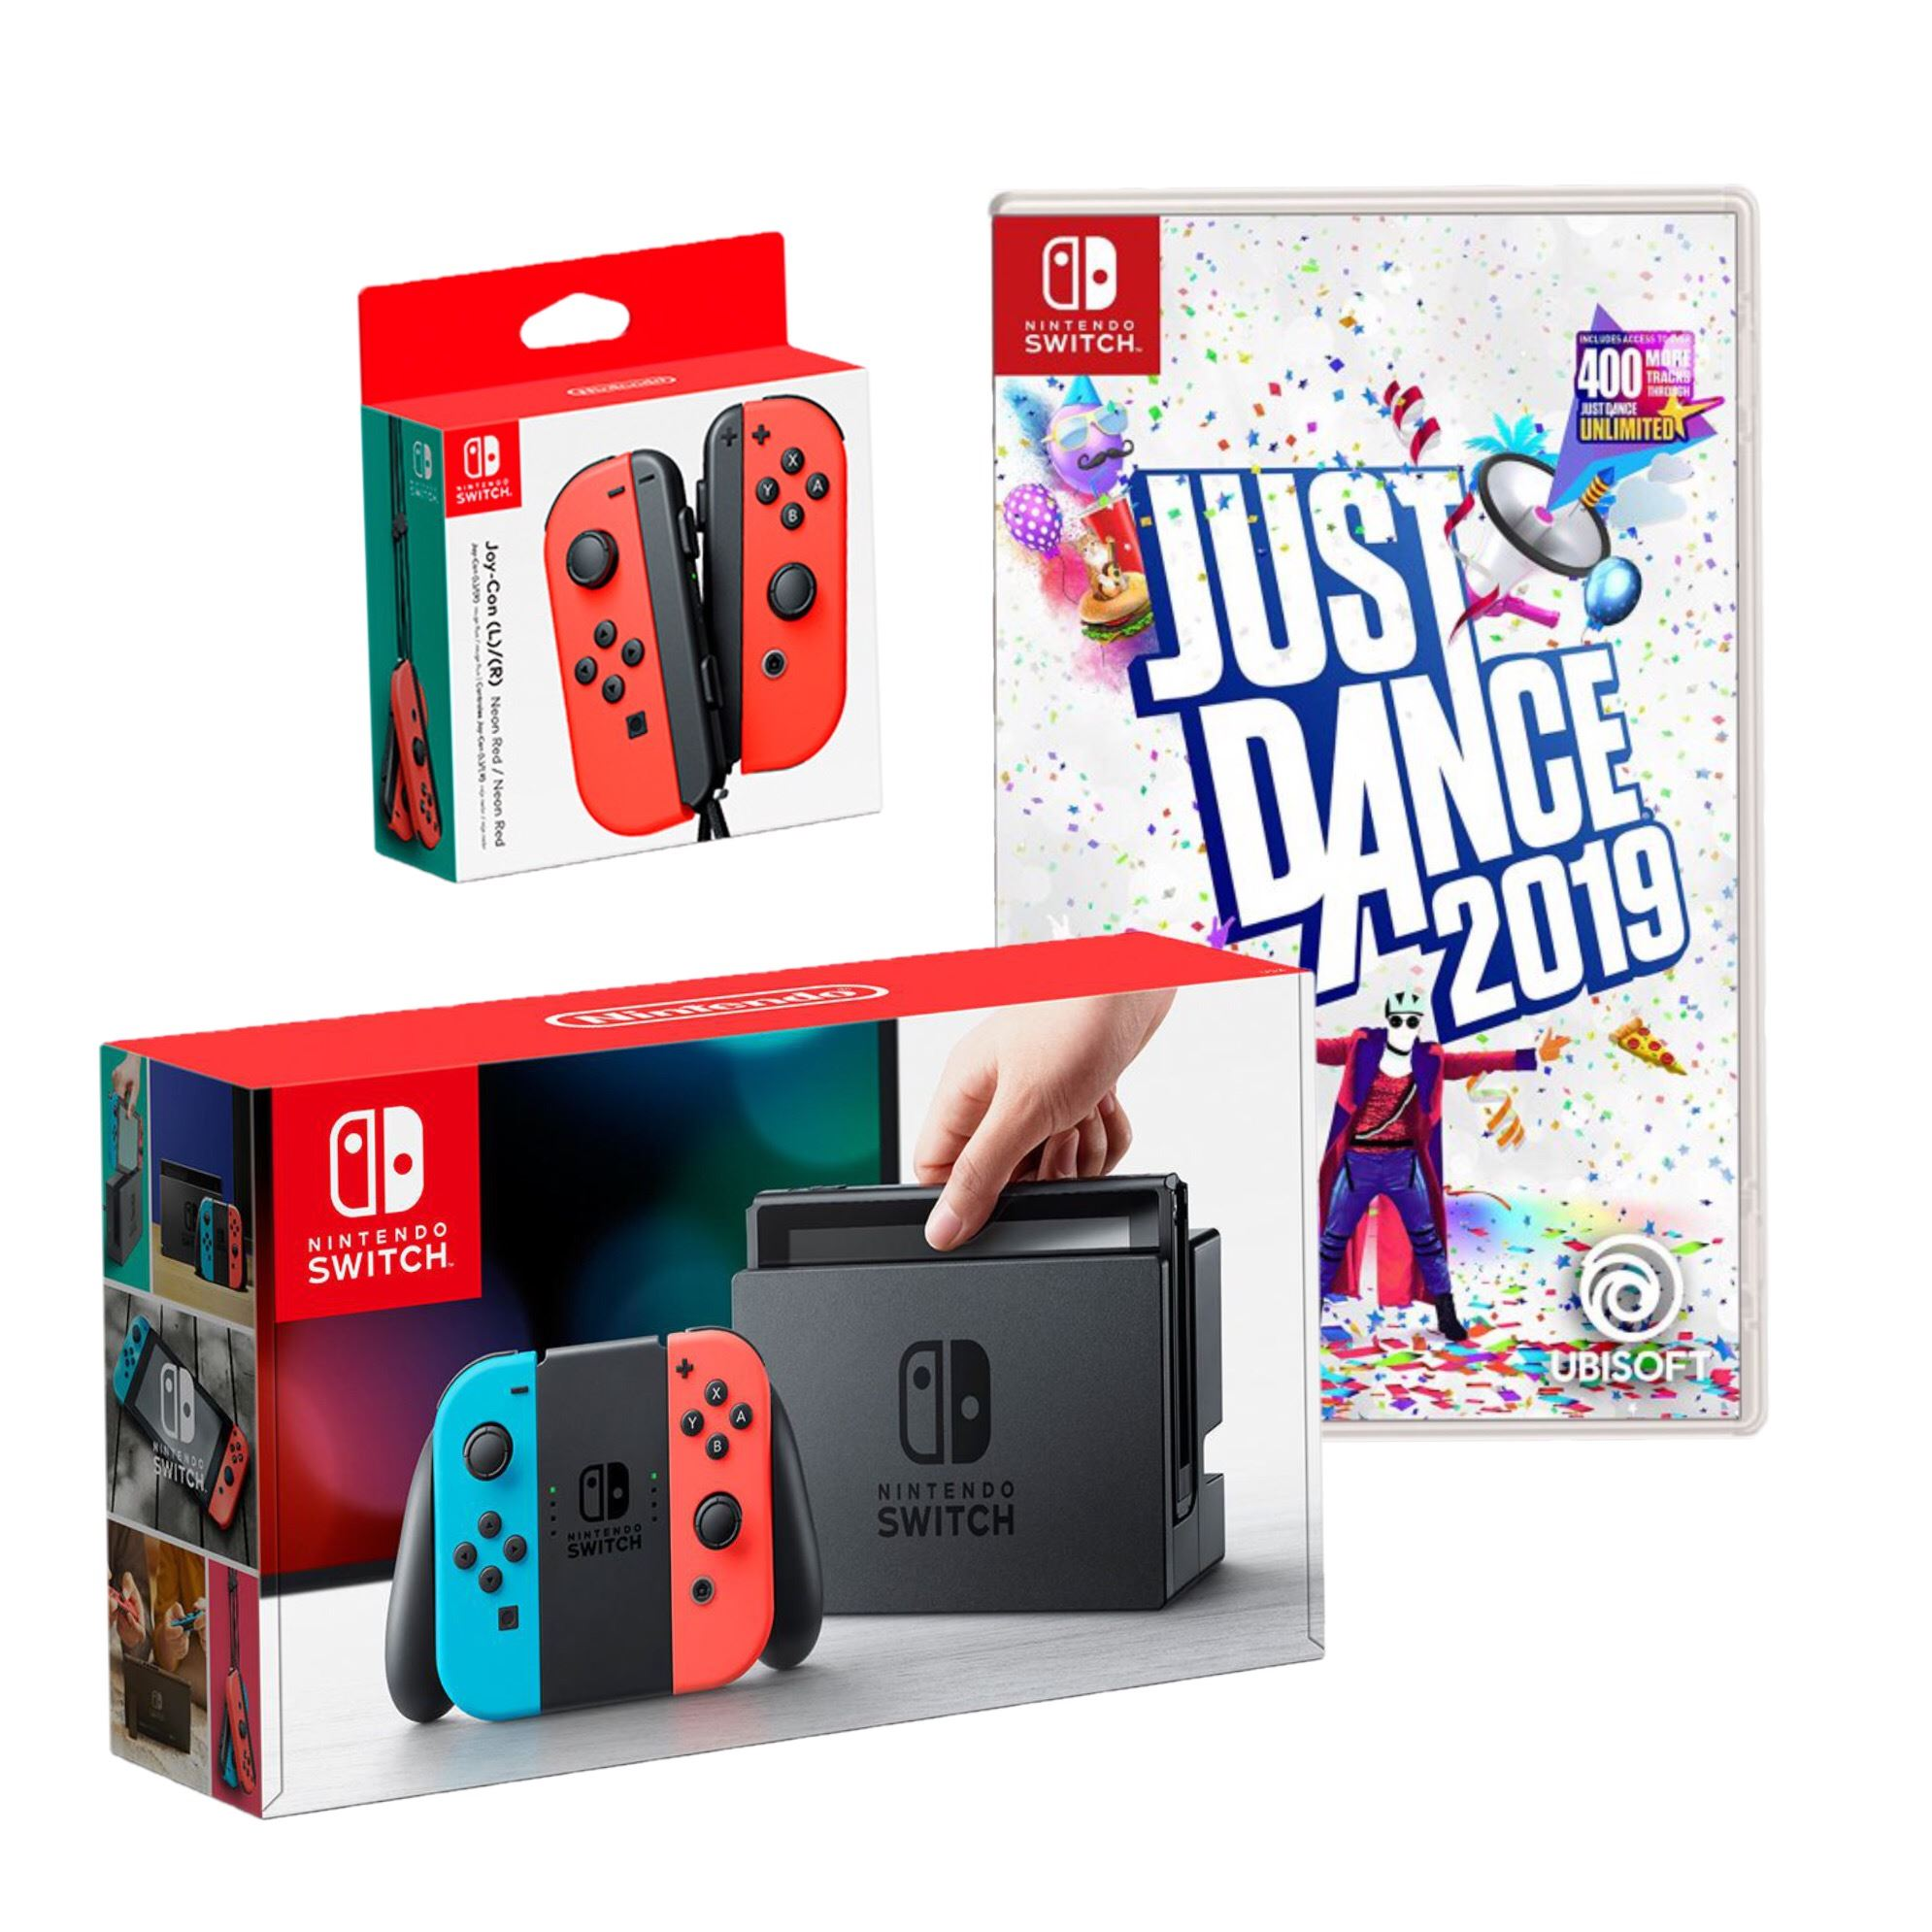 Consola Nintendo Switch Just Dance 2019 Joy Con Rojo Juntoz Com